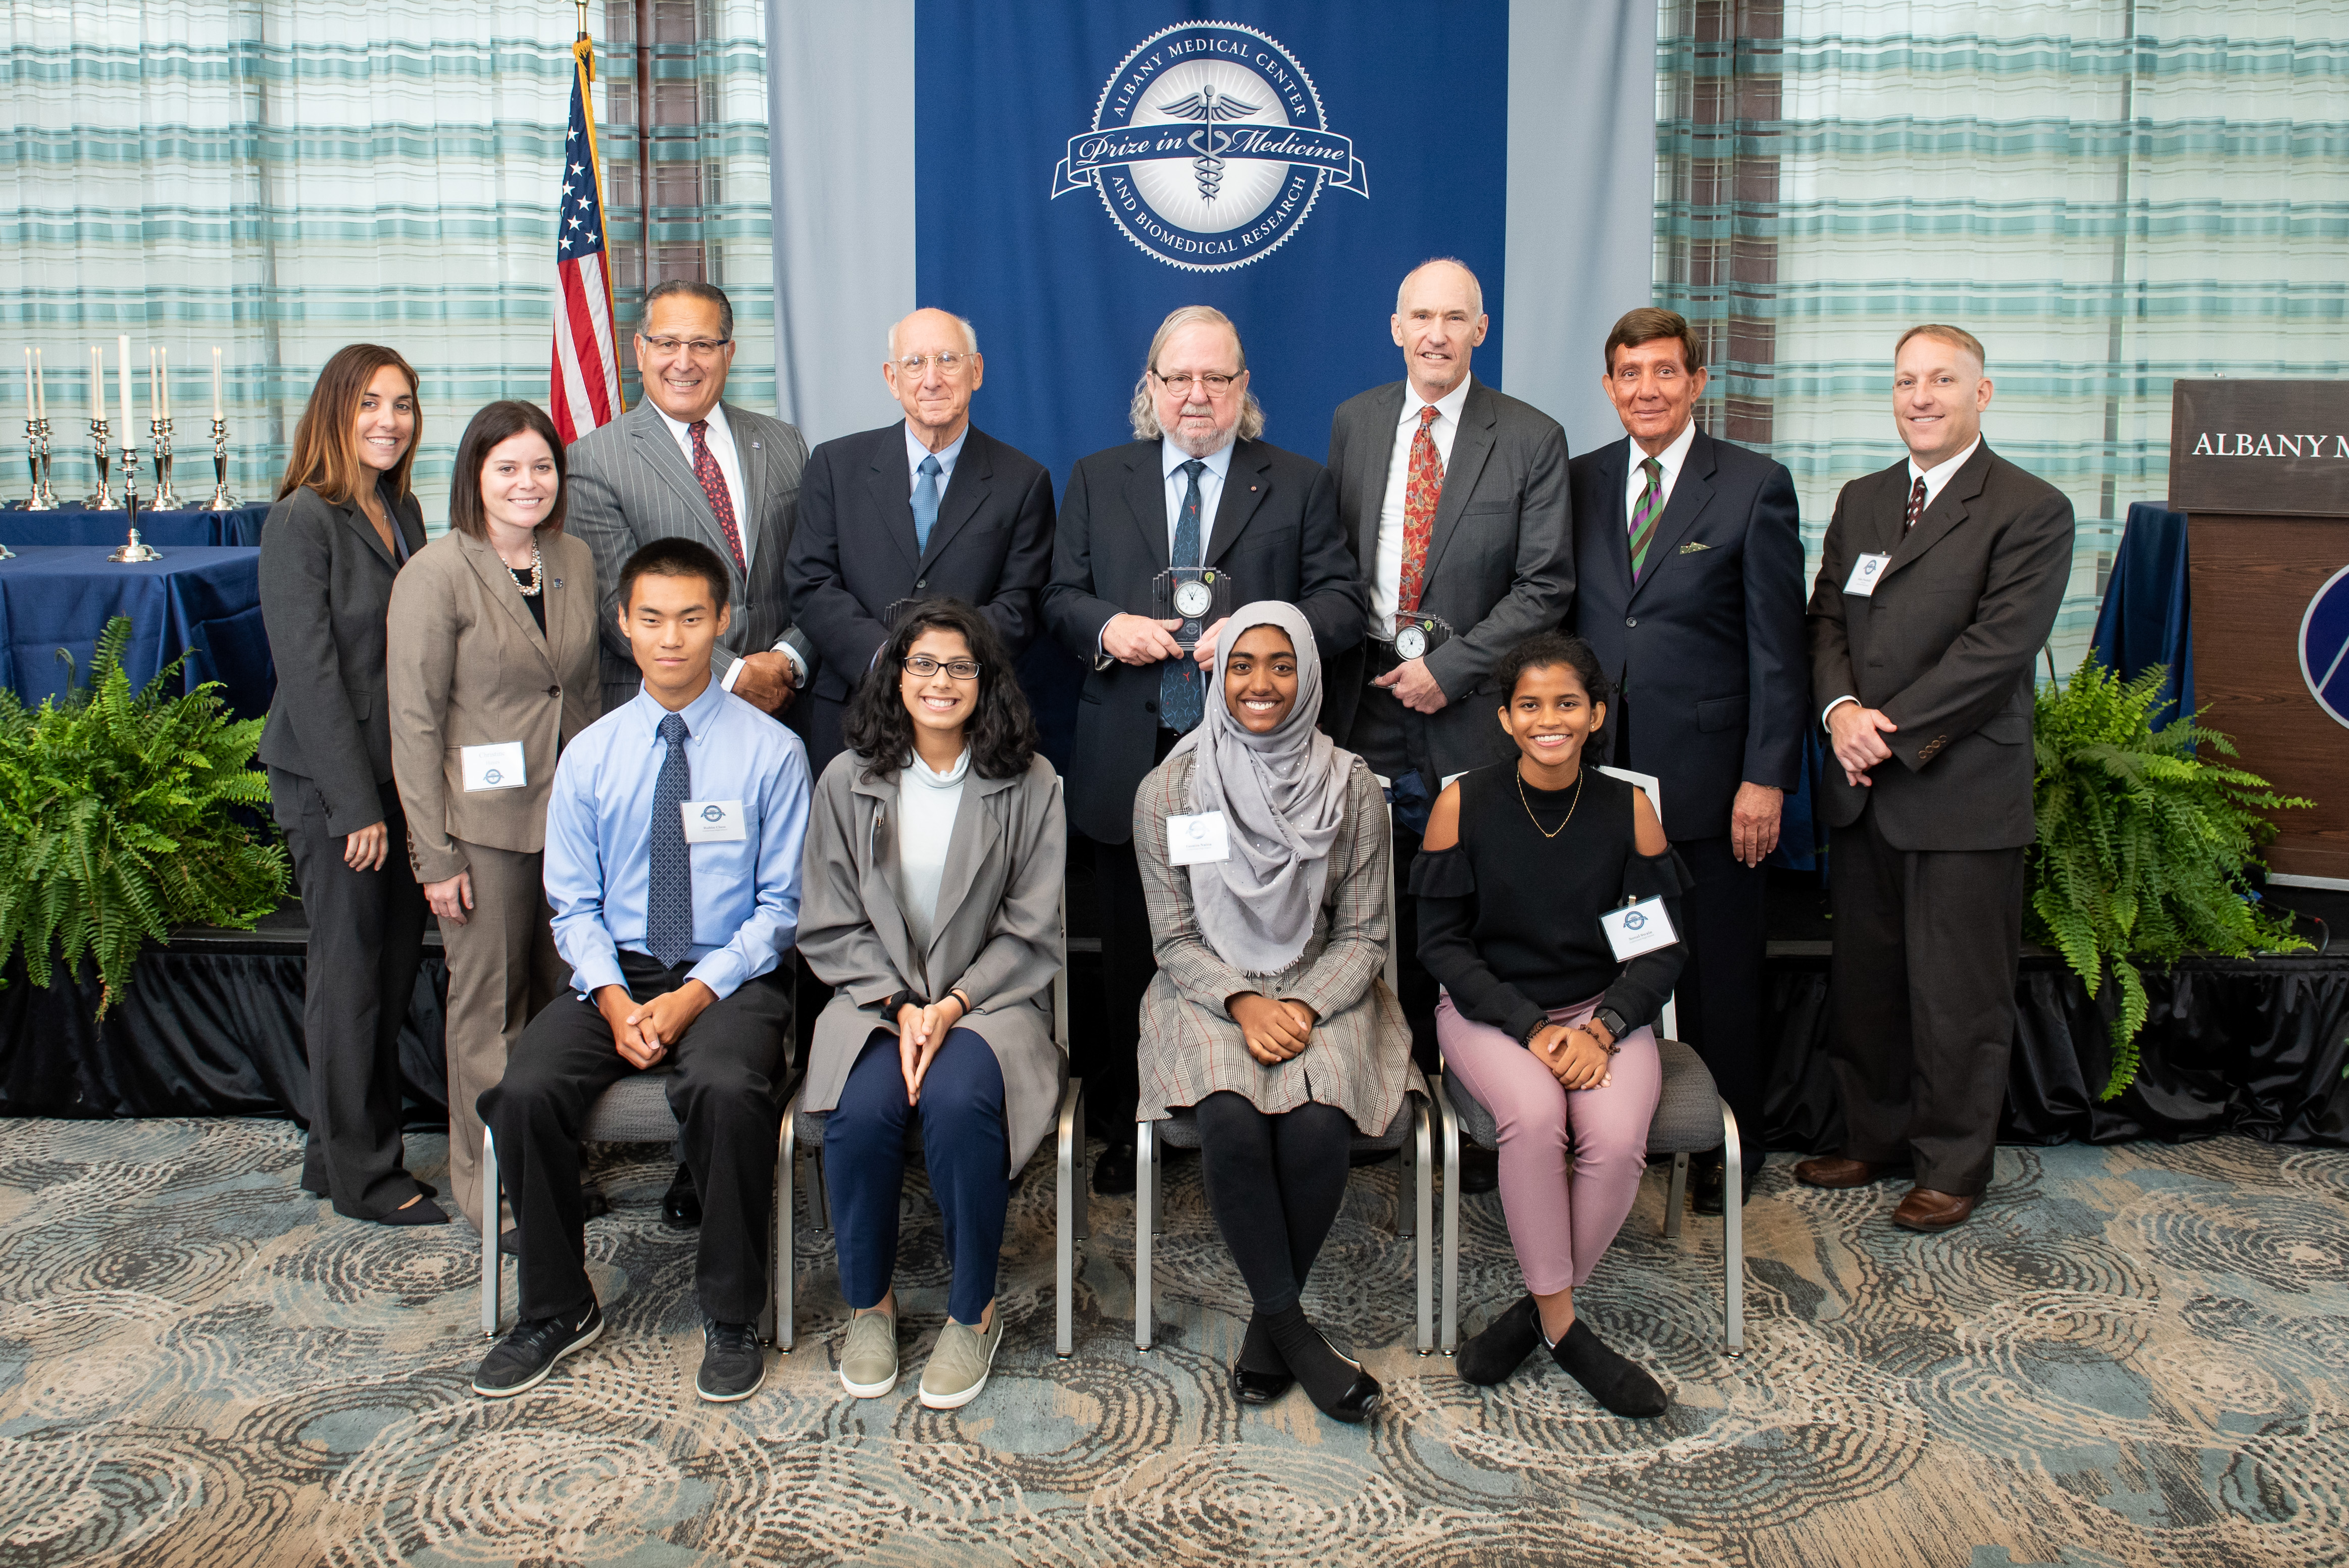 Group photo from the Albany Med Prize Ceremony